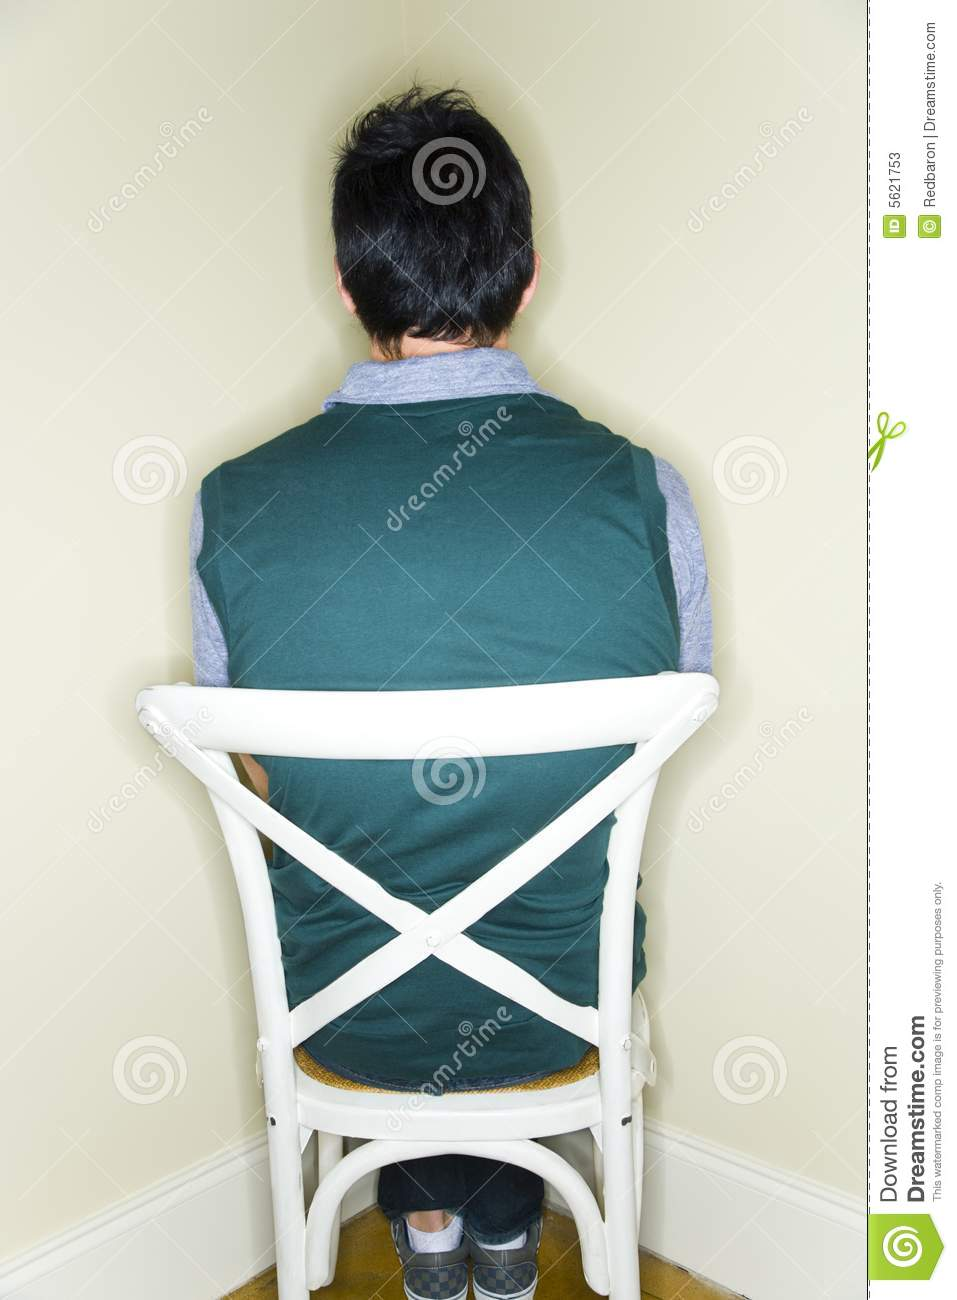 woman sitting in chair unusual pads man facing the wall stock photos - image: 5621753